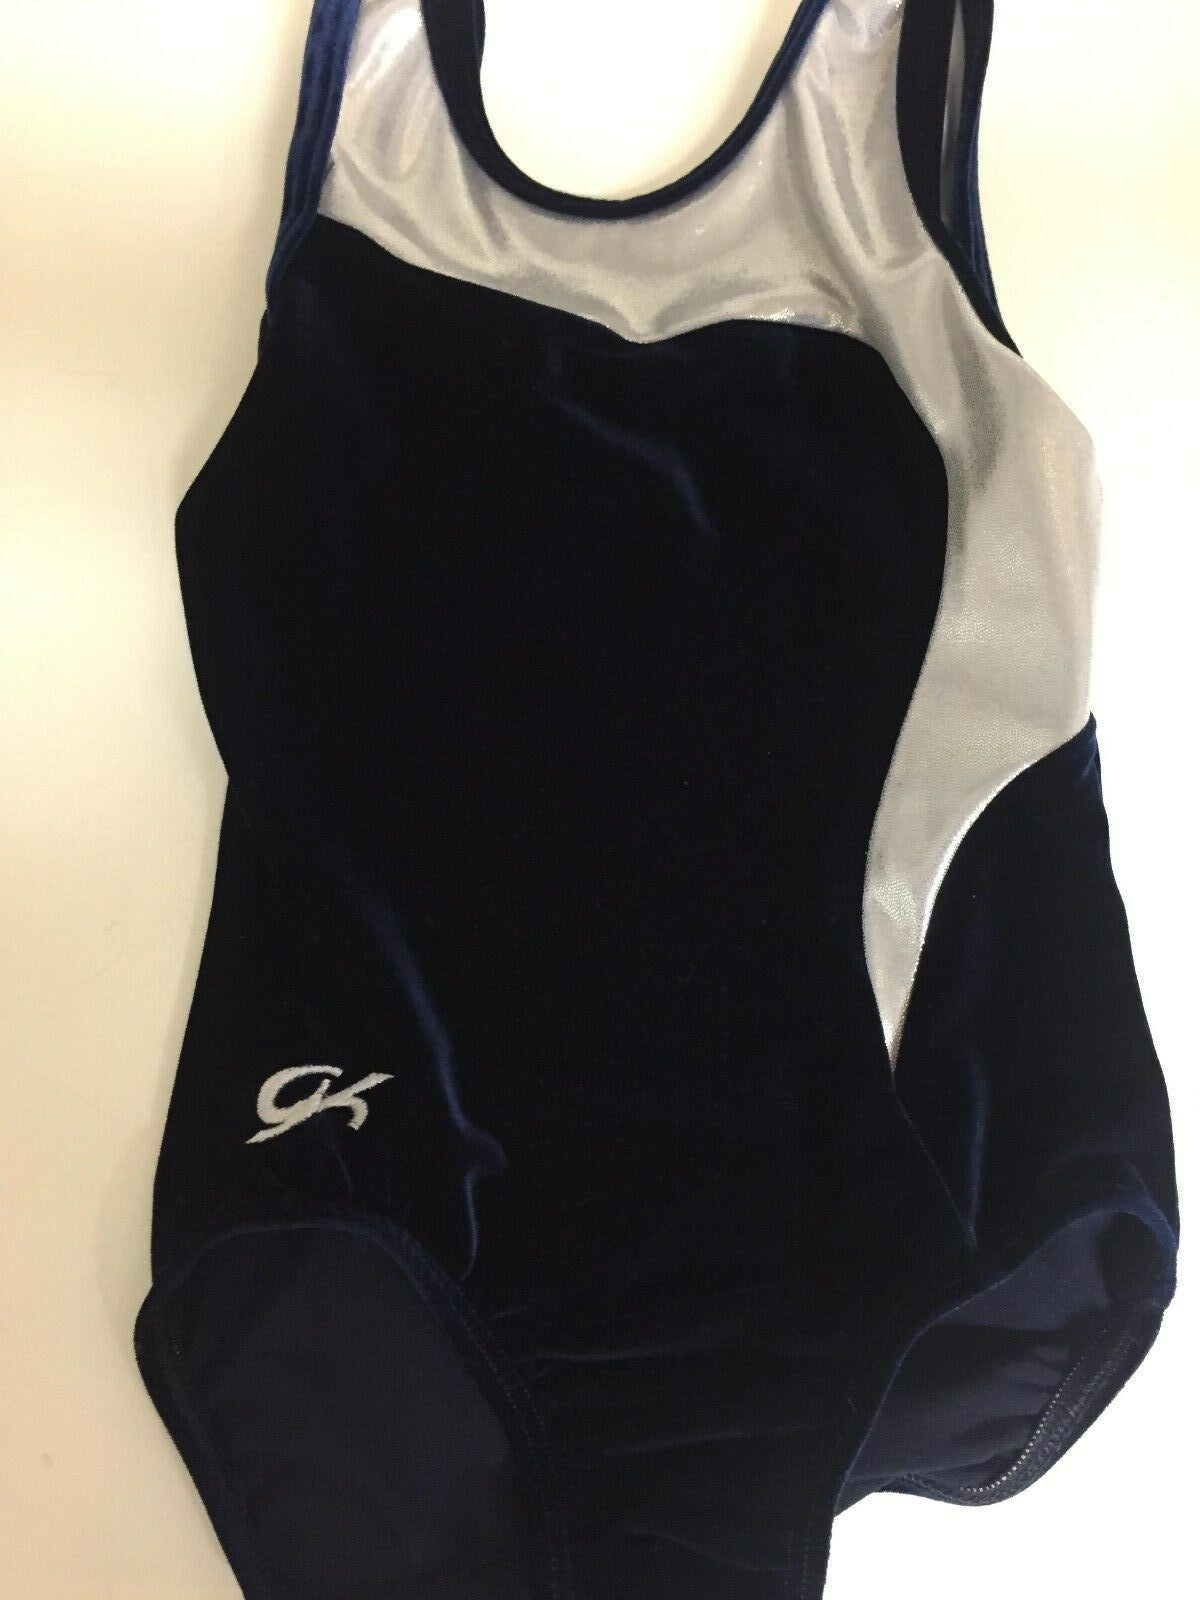 Girls GK Leotard, Size Medium.  Smoke-free home and no rips or tears.